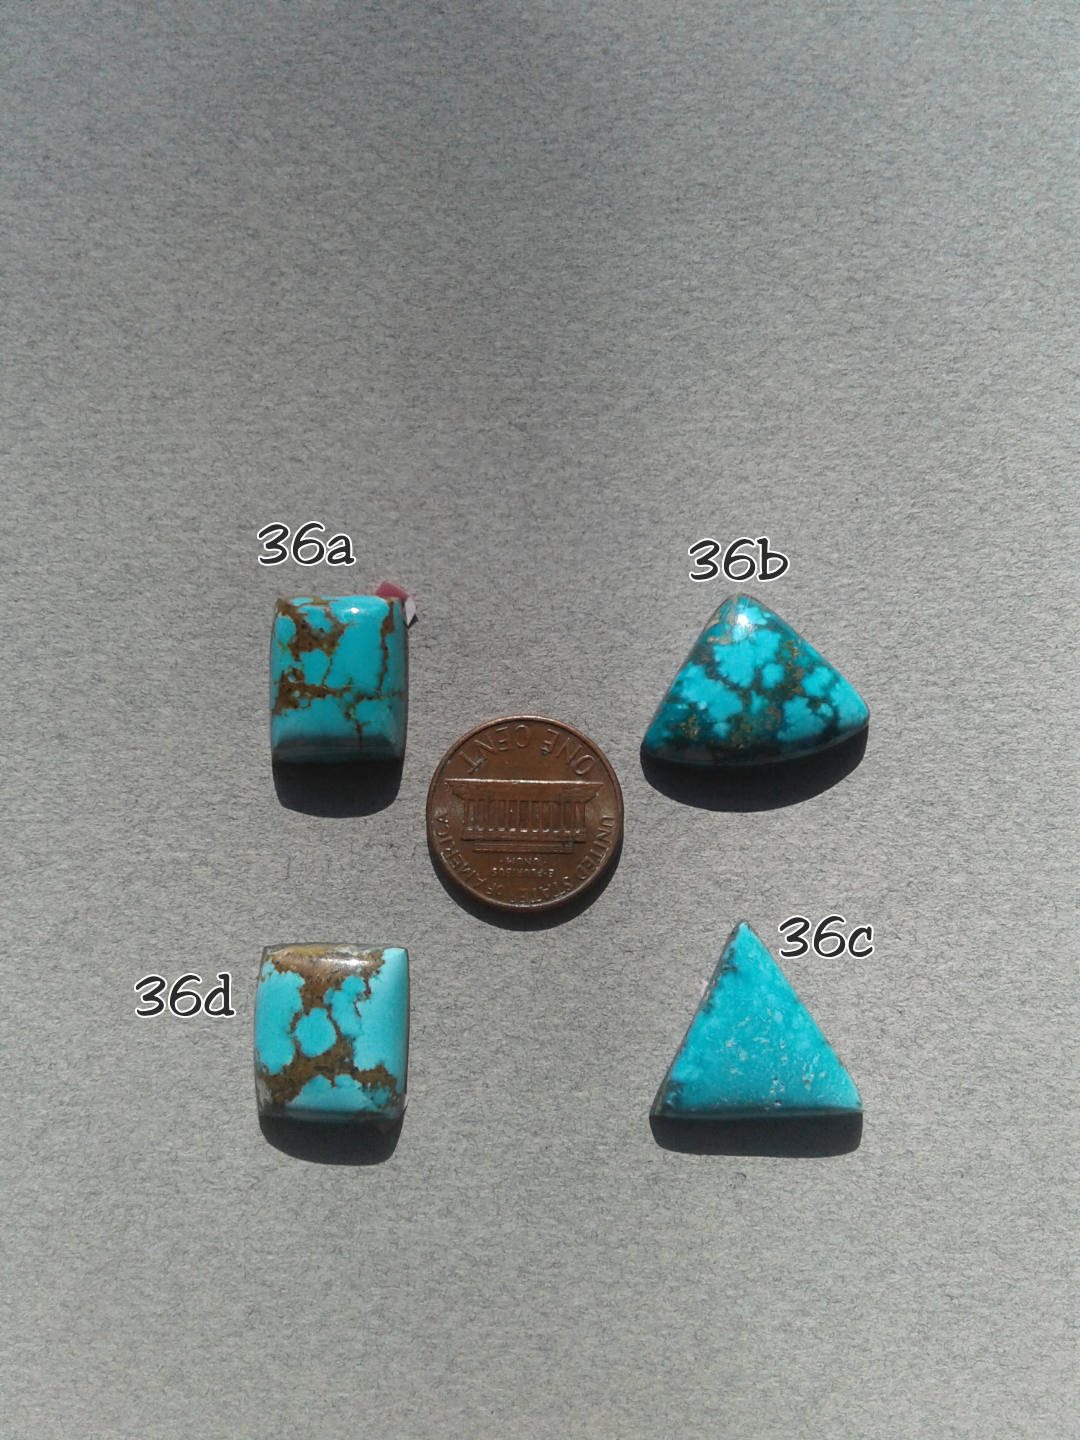 36c. Sierra Nevada turquoise, matrix turquoise, blue turquoise - Red Dirt Diva